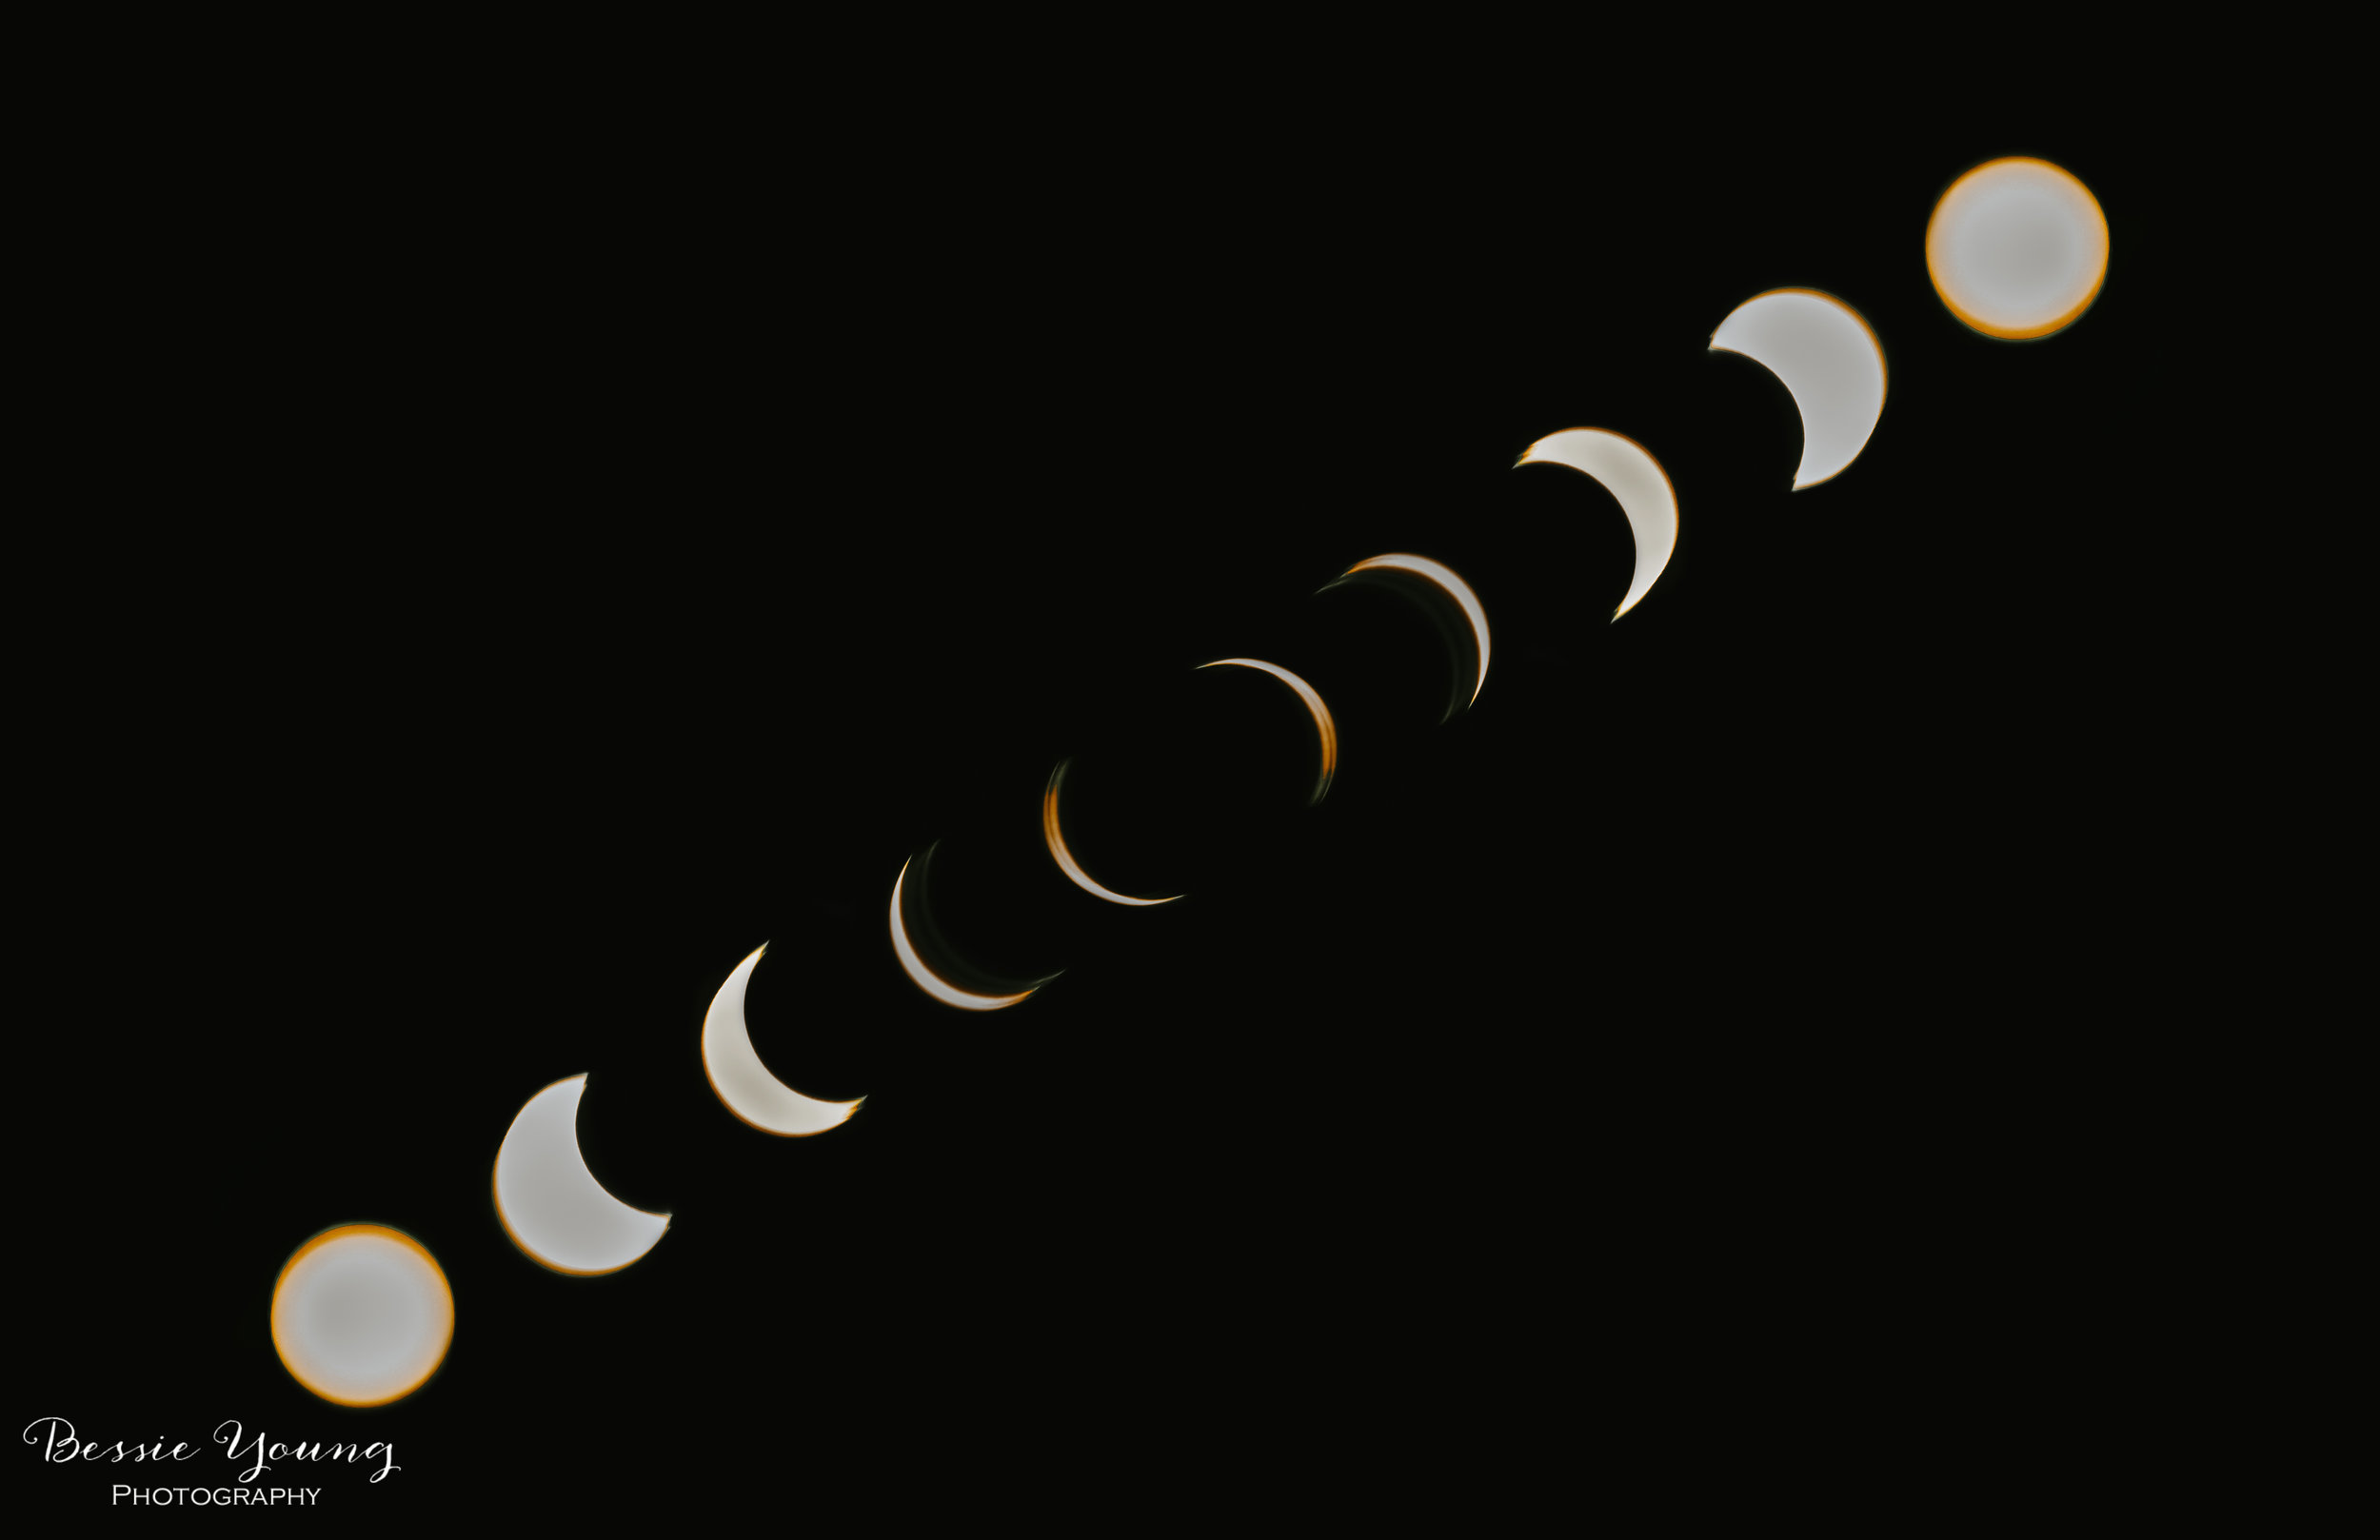 2017 Solar Eclipse Oregon - Bessie Young Photography Watermarked.jpg